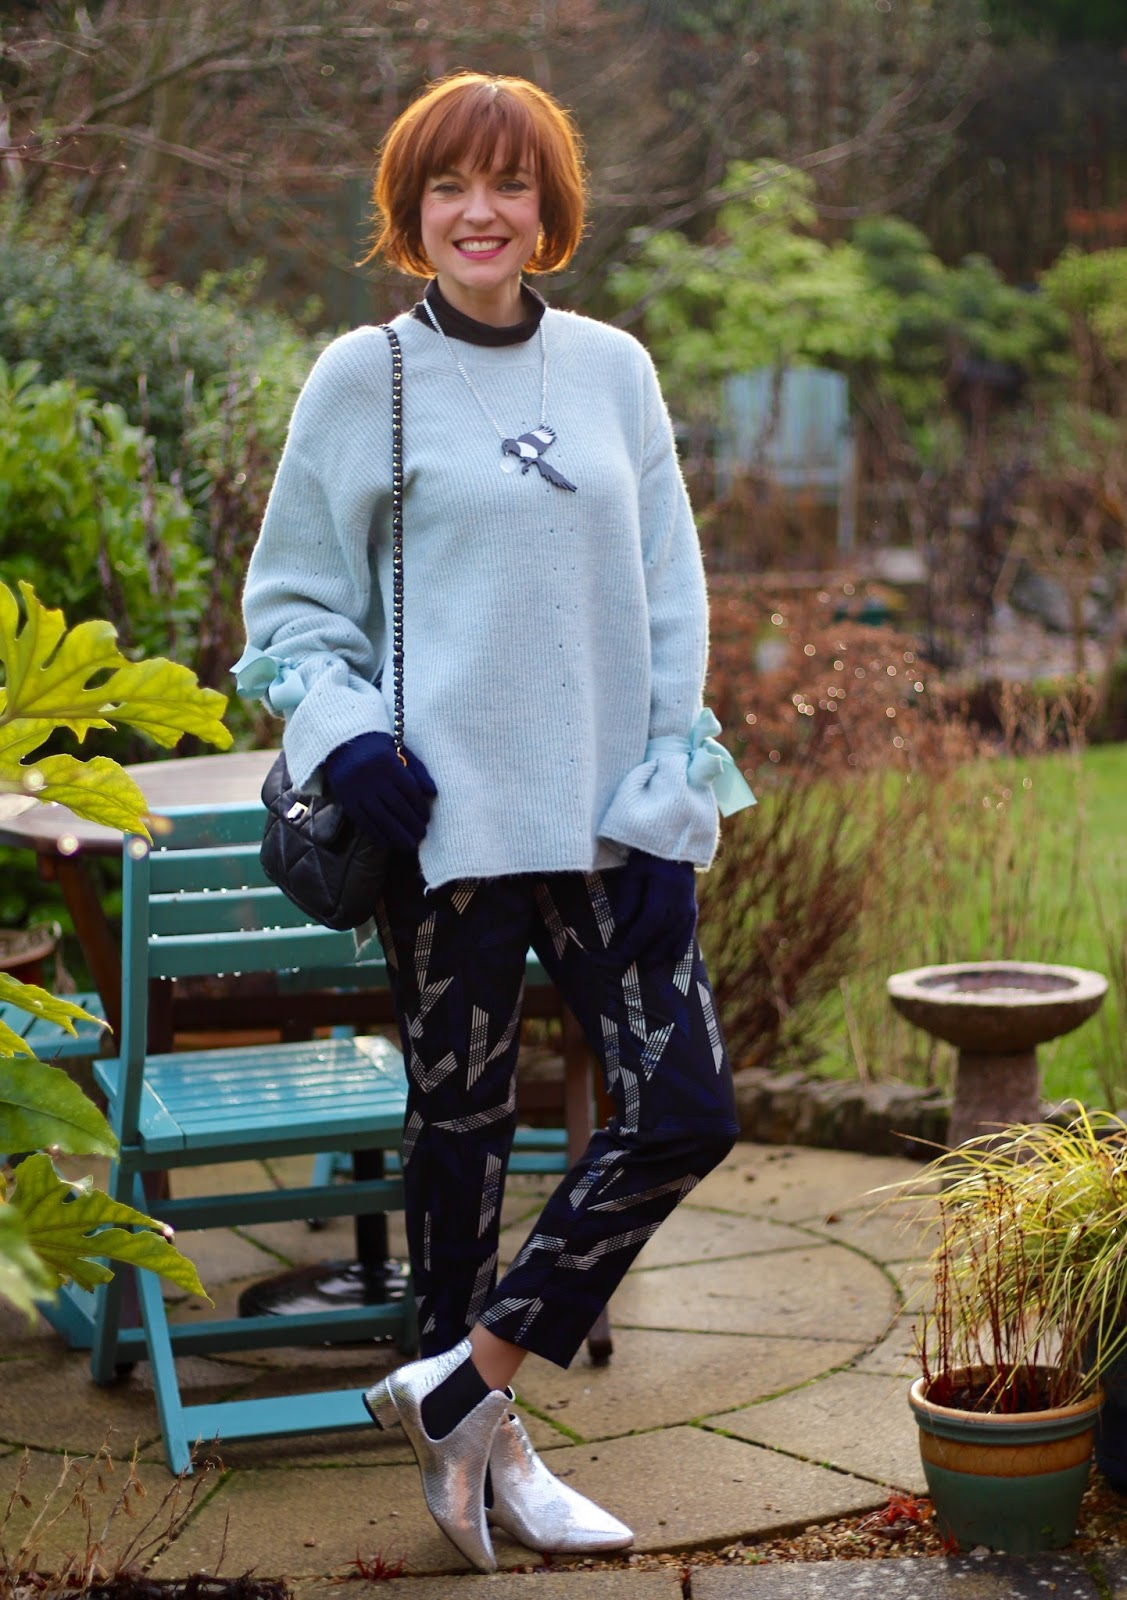 Oversized Topshop Jumper with Statement sleeves, patterned trousers and silver boots | Fake fabulous - style over 40.